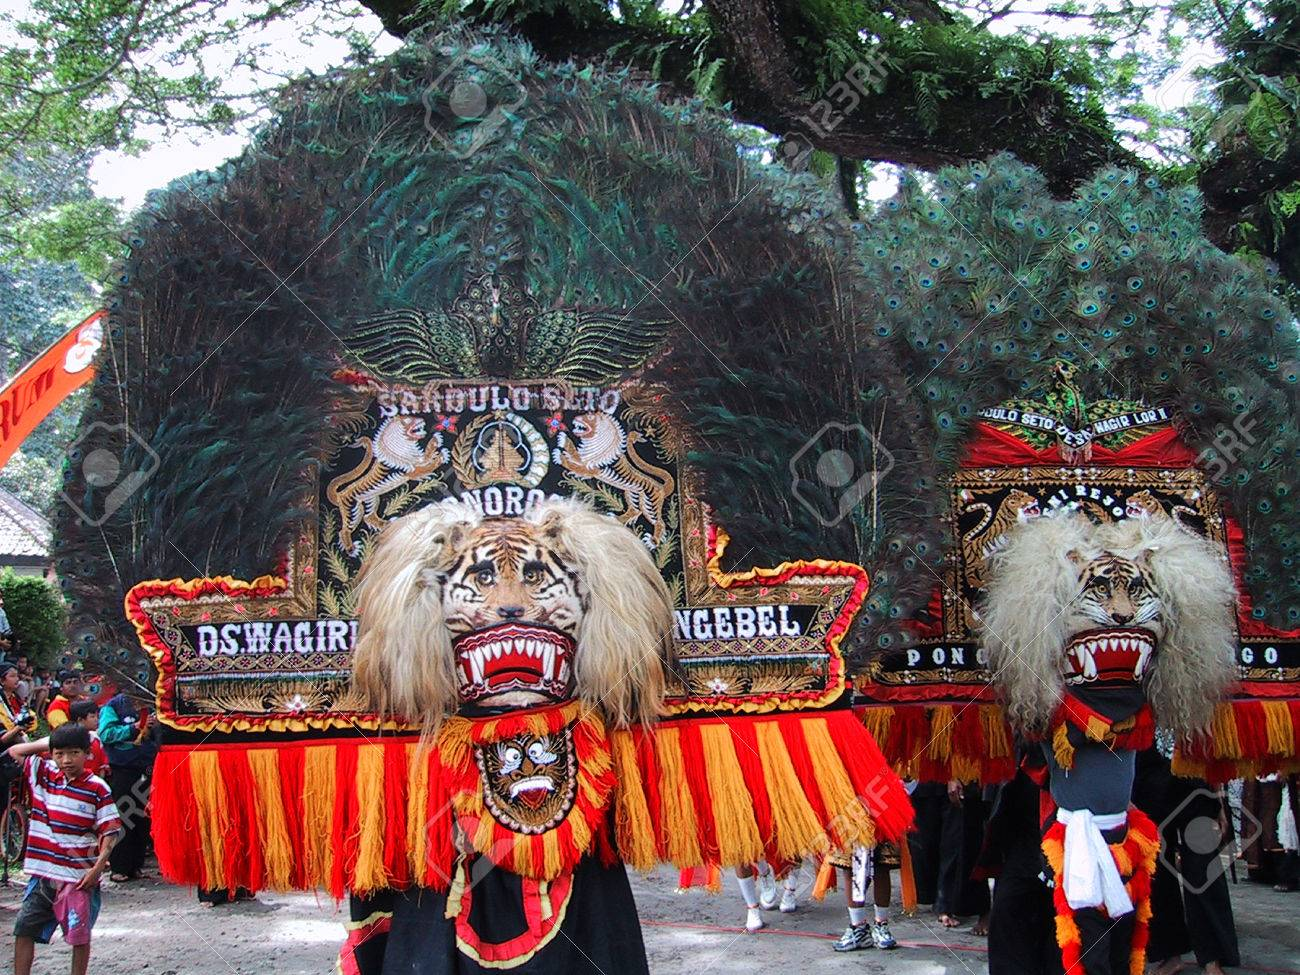 Reog ponorogo stock photos royalty free reog ponorogo images performance traditional dance reog ponorogo in ngebel lake ponorogo east java indonesia editorial thecheapjerseys Gallery